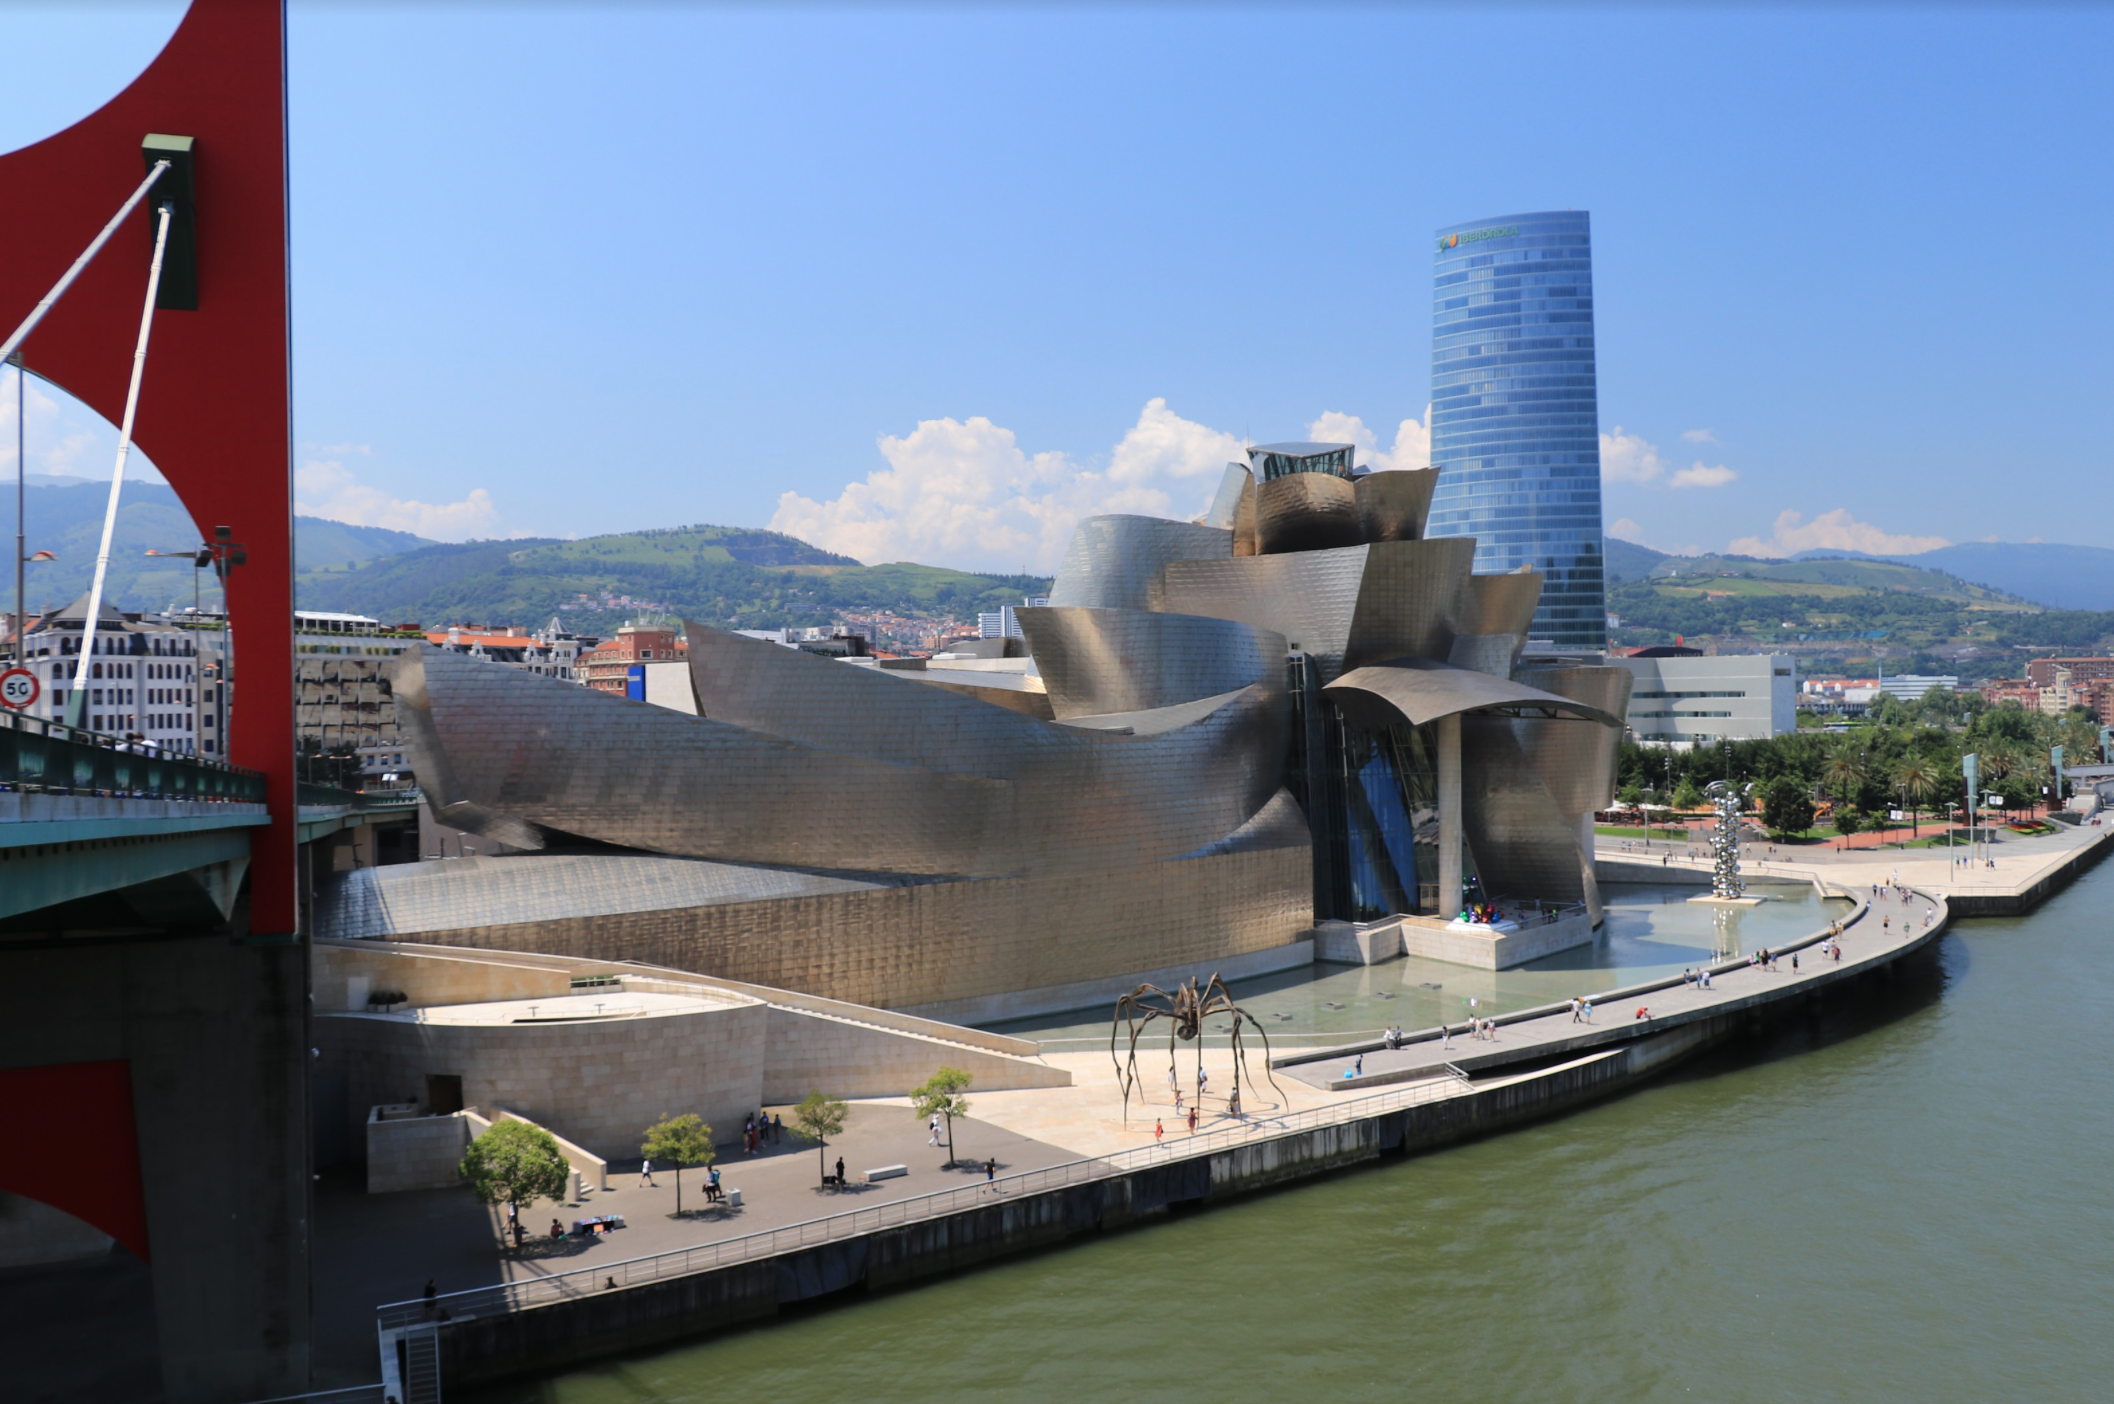 In contrast to Madrid, Bilbao is known for its avant garde, contemporary buildings, most notably The Guggenheim Bilbao-- an absolute must-see when visiting -- designed by Frank Gehry and inaugurated in 1997, which elevated the city and secured Bilbao a spot on the tourist's map.